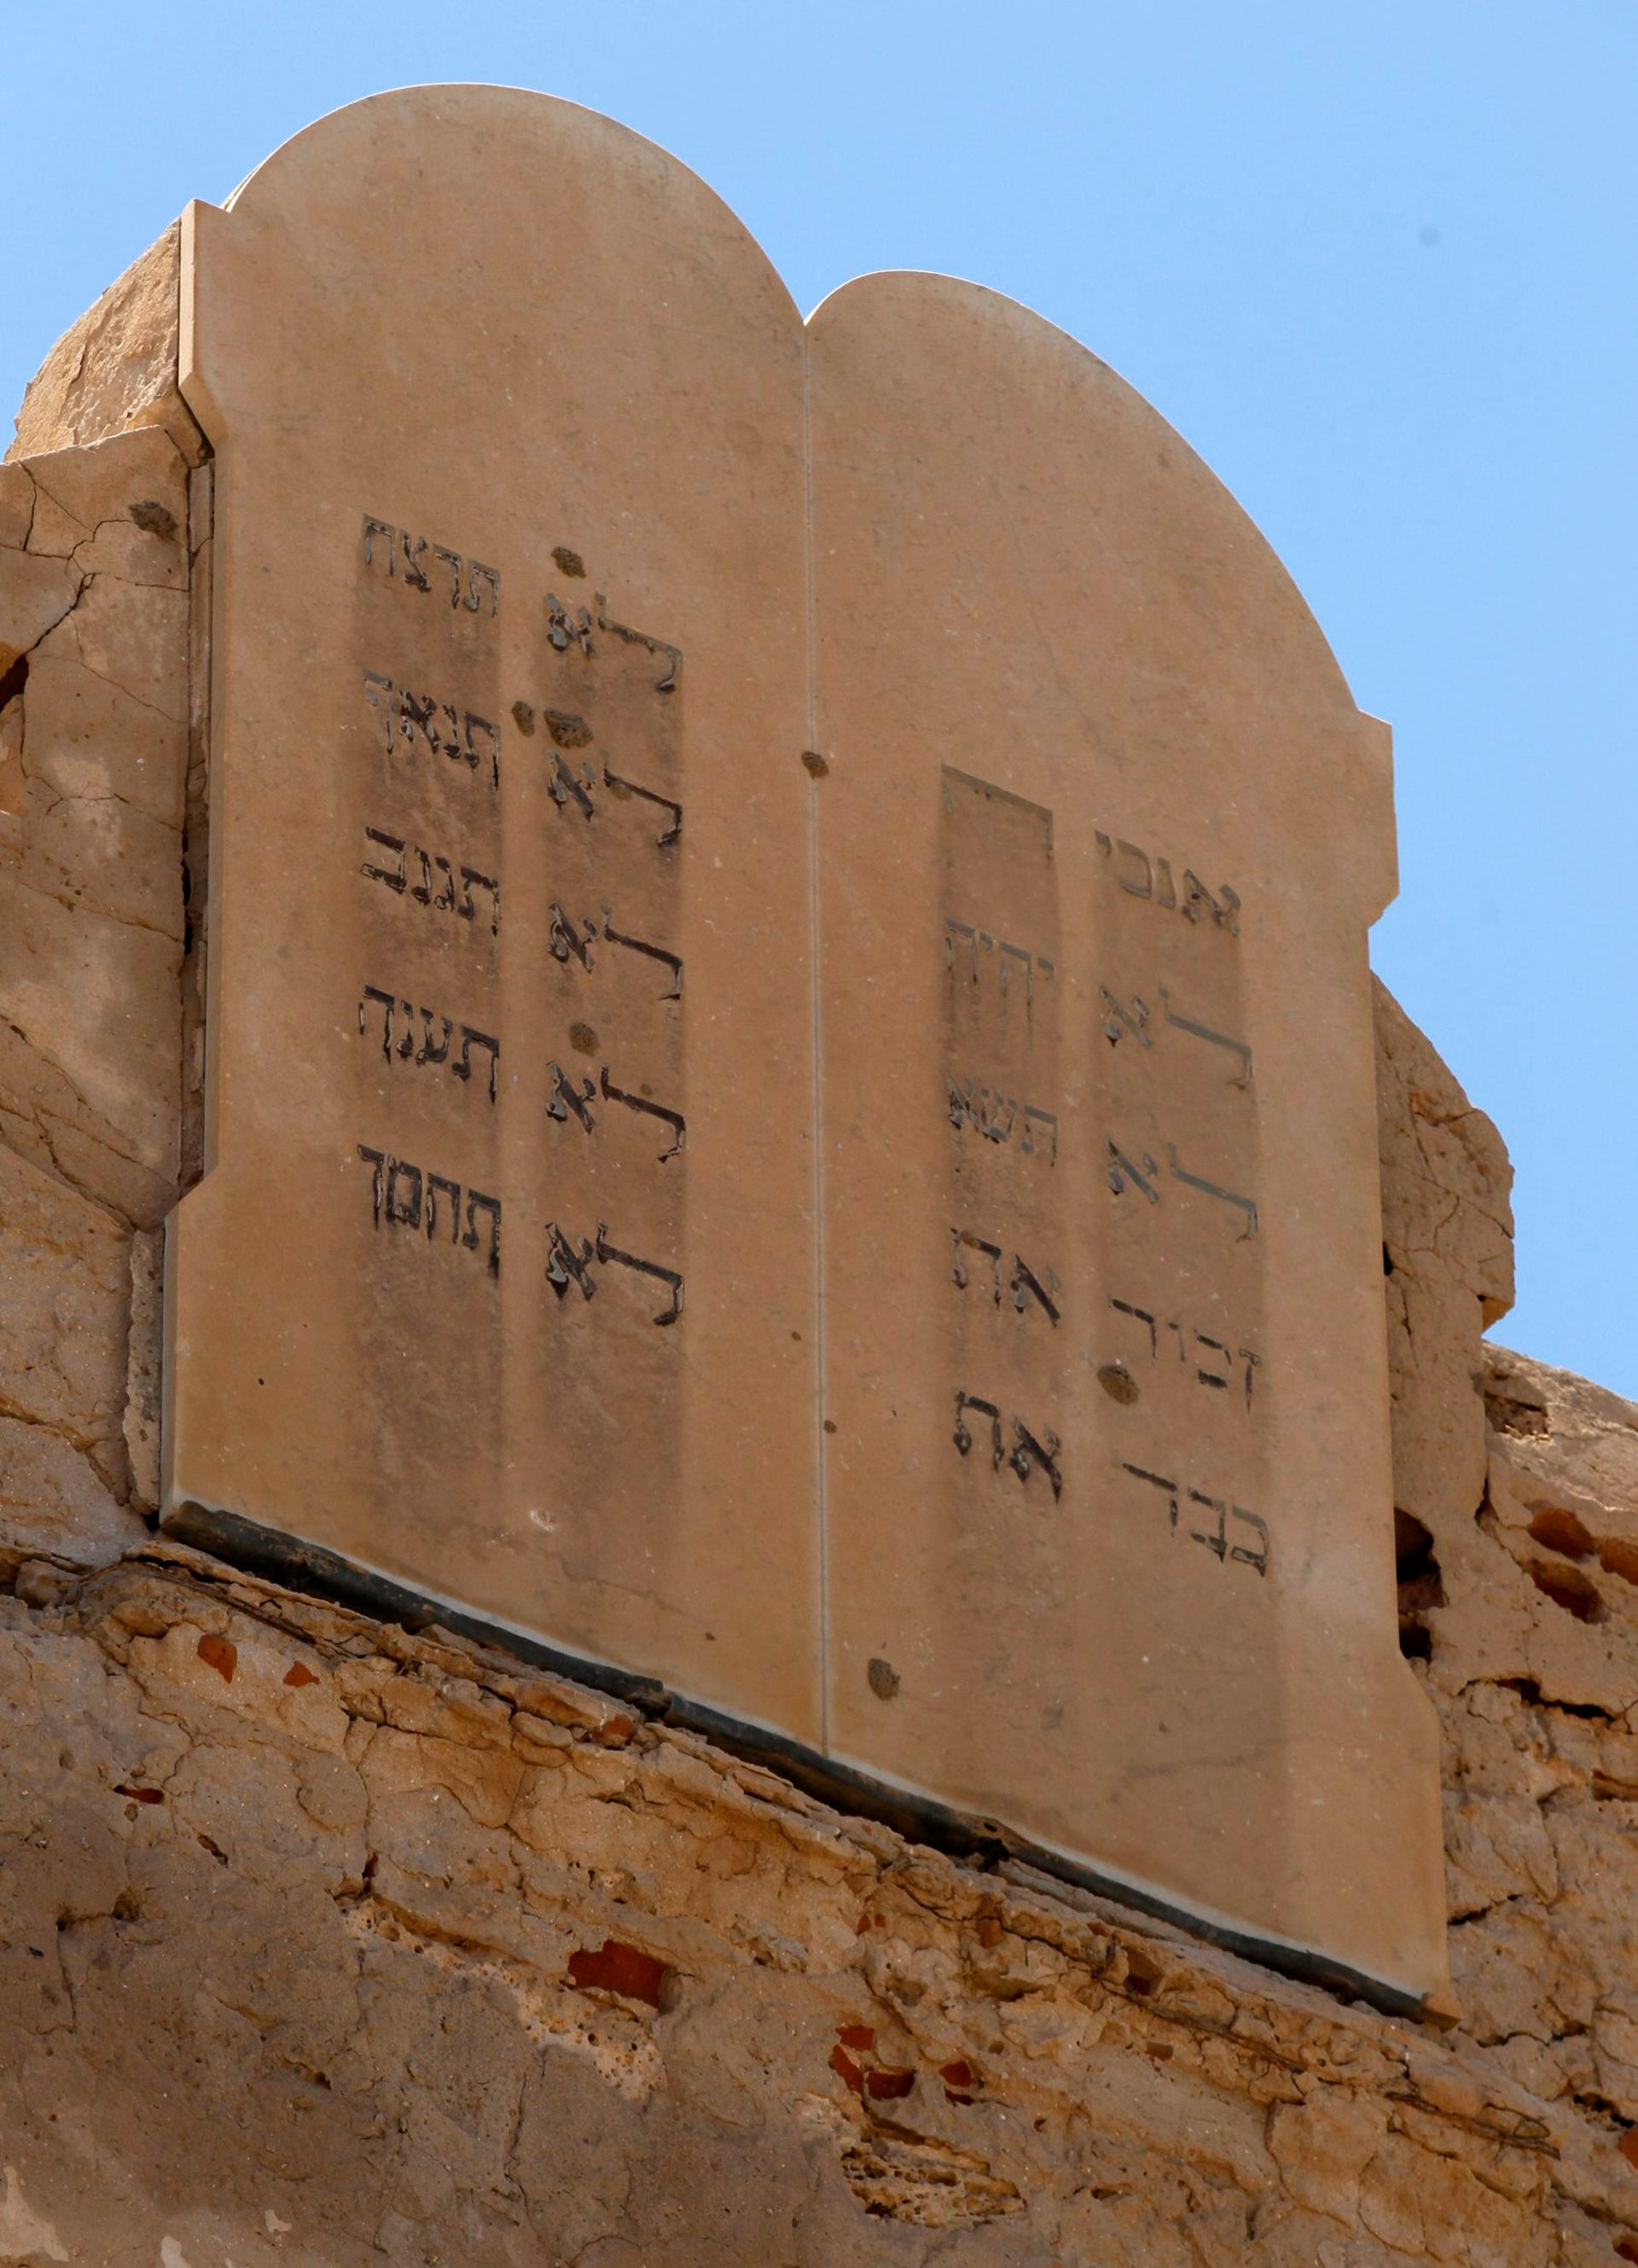 The Ten Commandments written in Hebrew are seen carved in stone on top of the Dar al-Bishi synagogue in the walled old city of Tripoli, Libya.